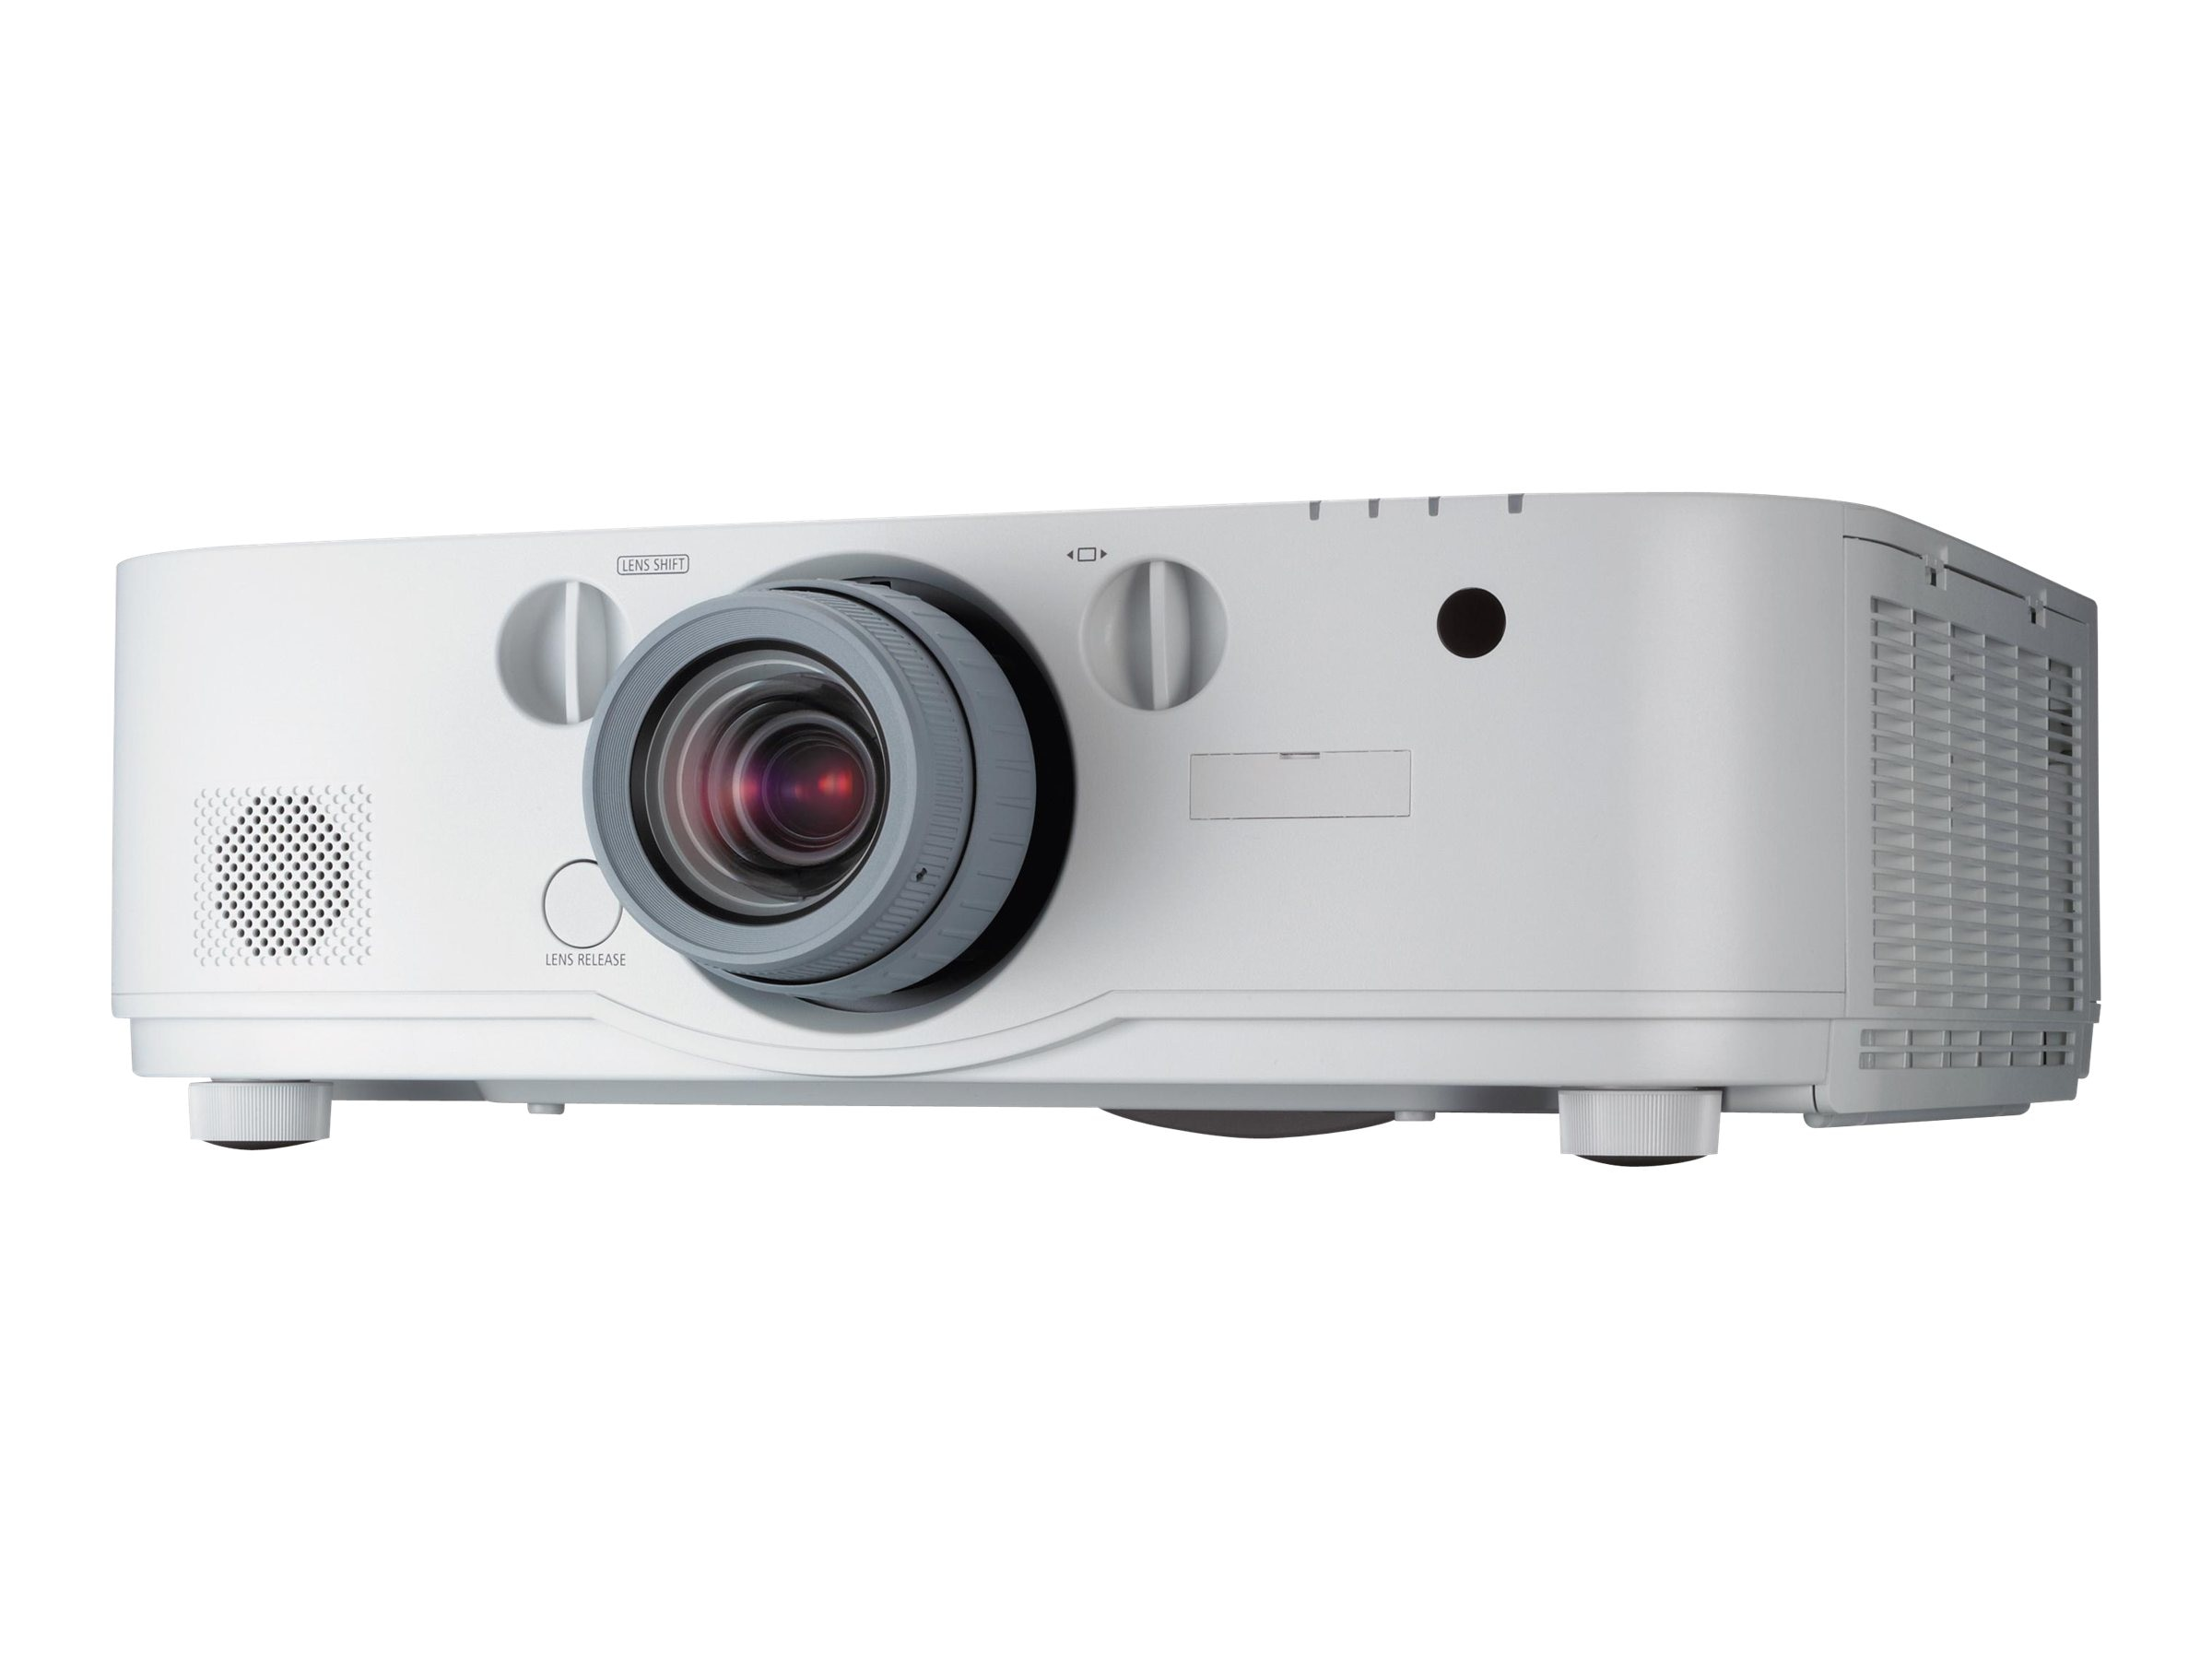 NEC NP-PA622U WUXGA LCD Projector, 6200 Lumens, White with Zoom Lens